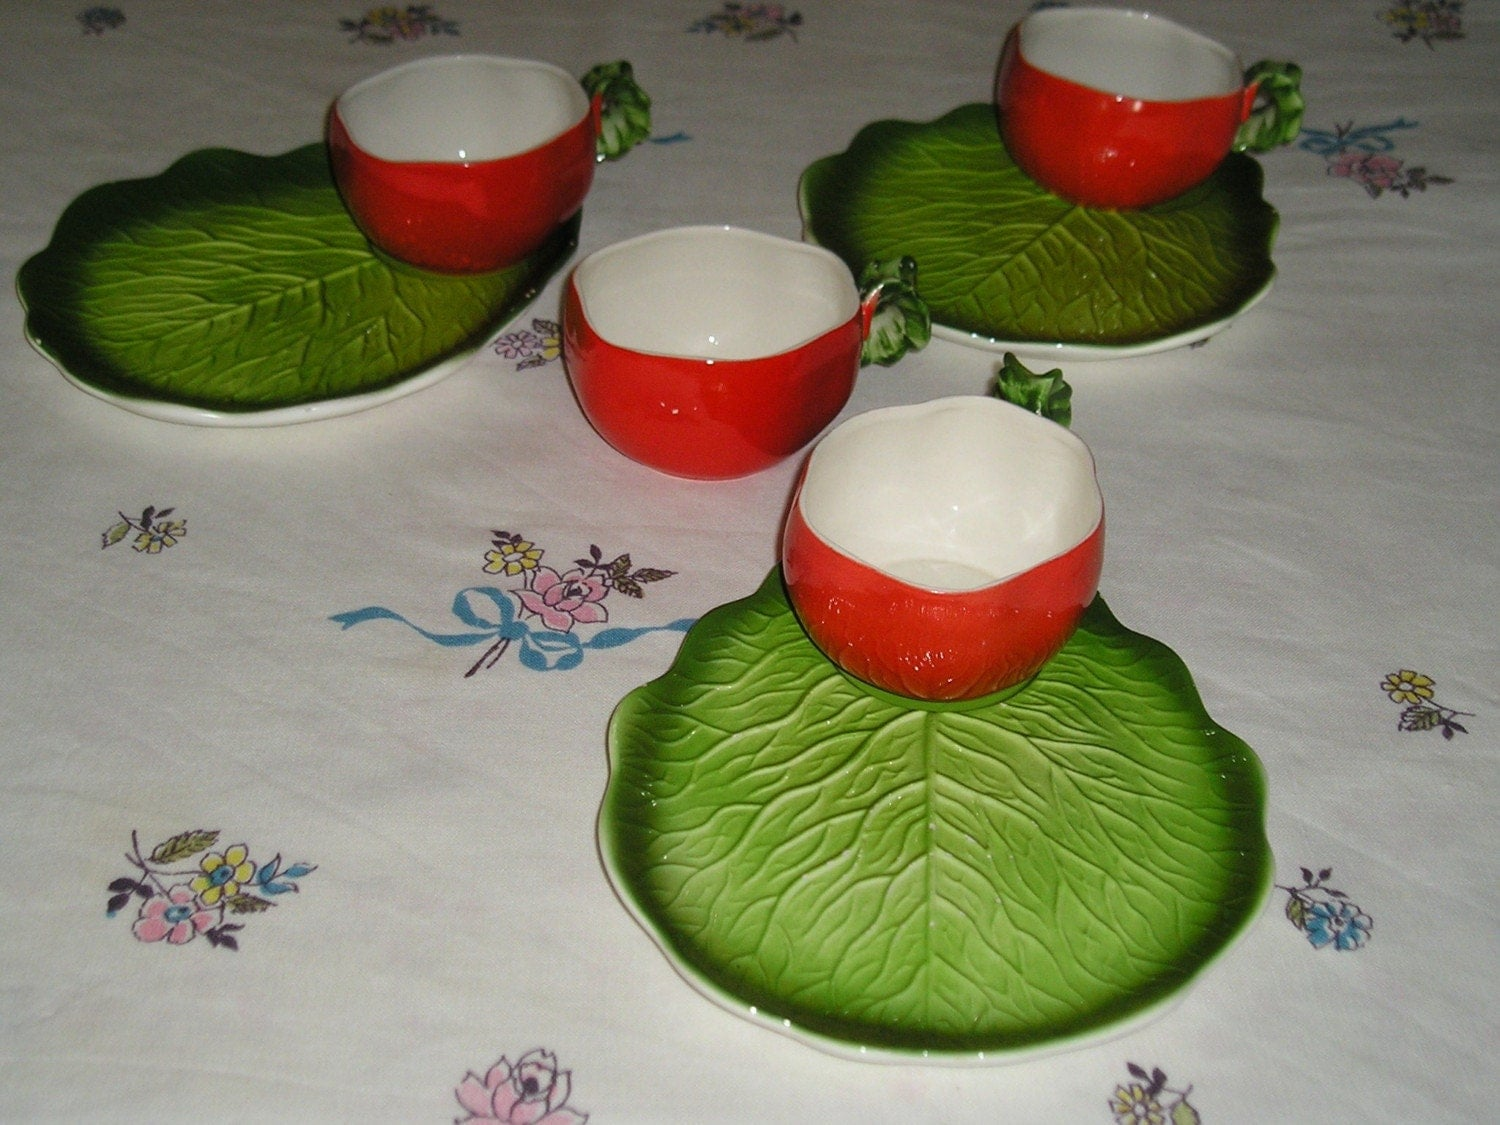 VINTAGE  SNACK SET                                              TOMATOES AND LETTUCE LEAVES                                                              1960s'